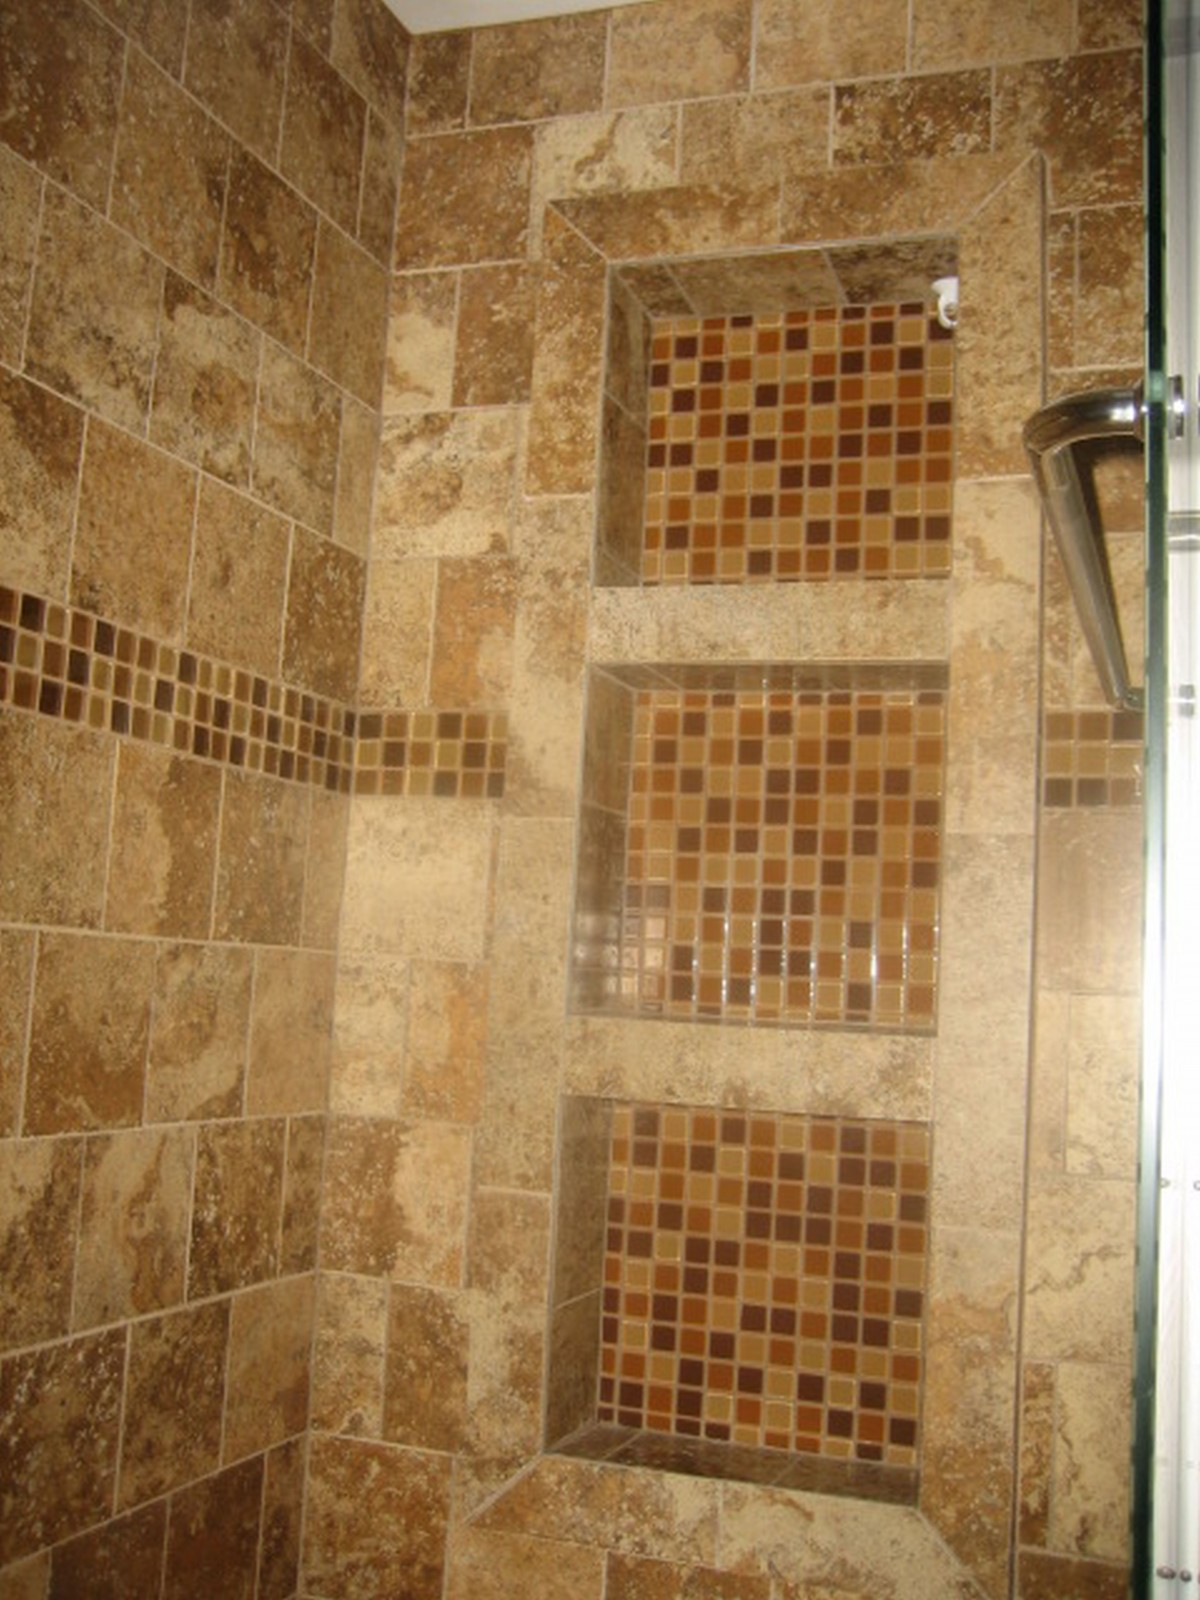 30 pictures of bathroom wall tile 12x12 - Modern bathroom wall tile design ideas ...